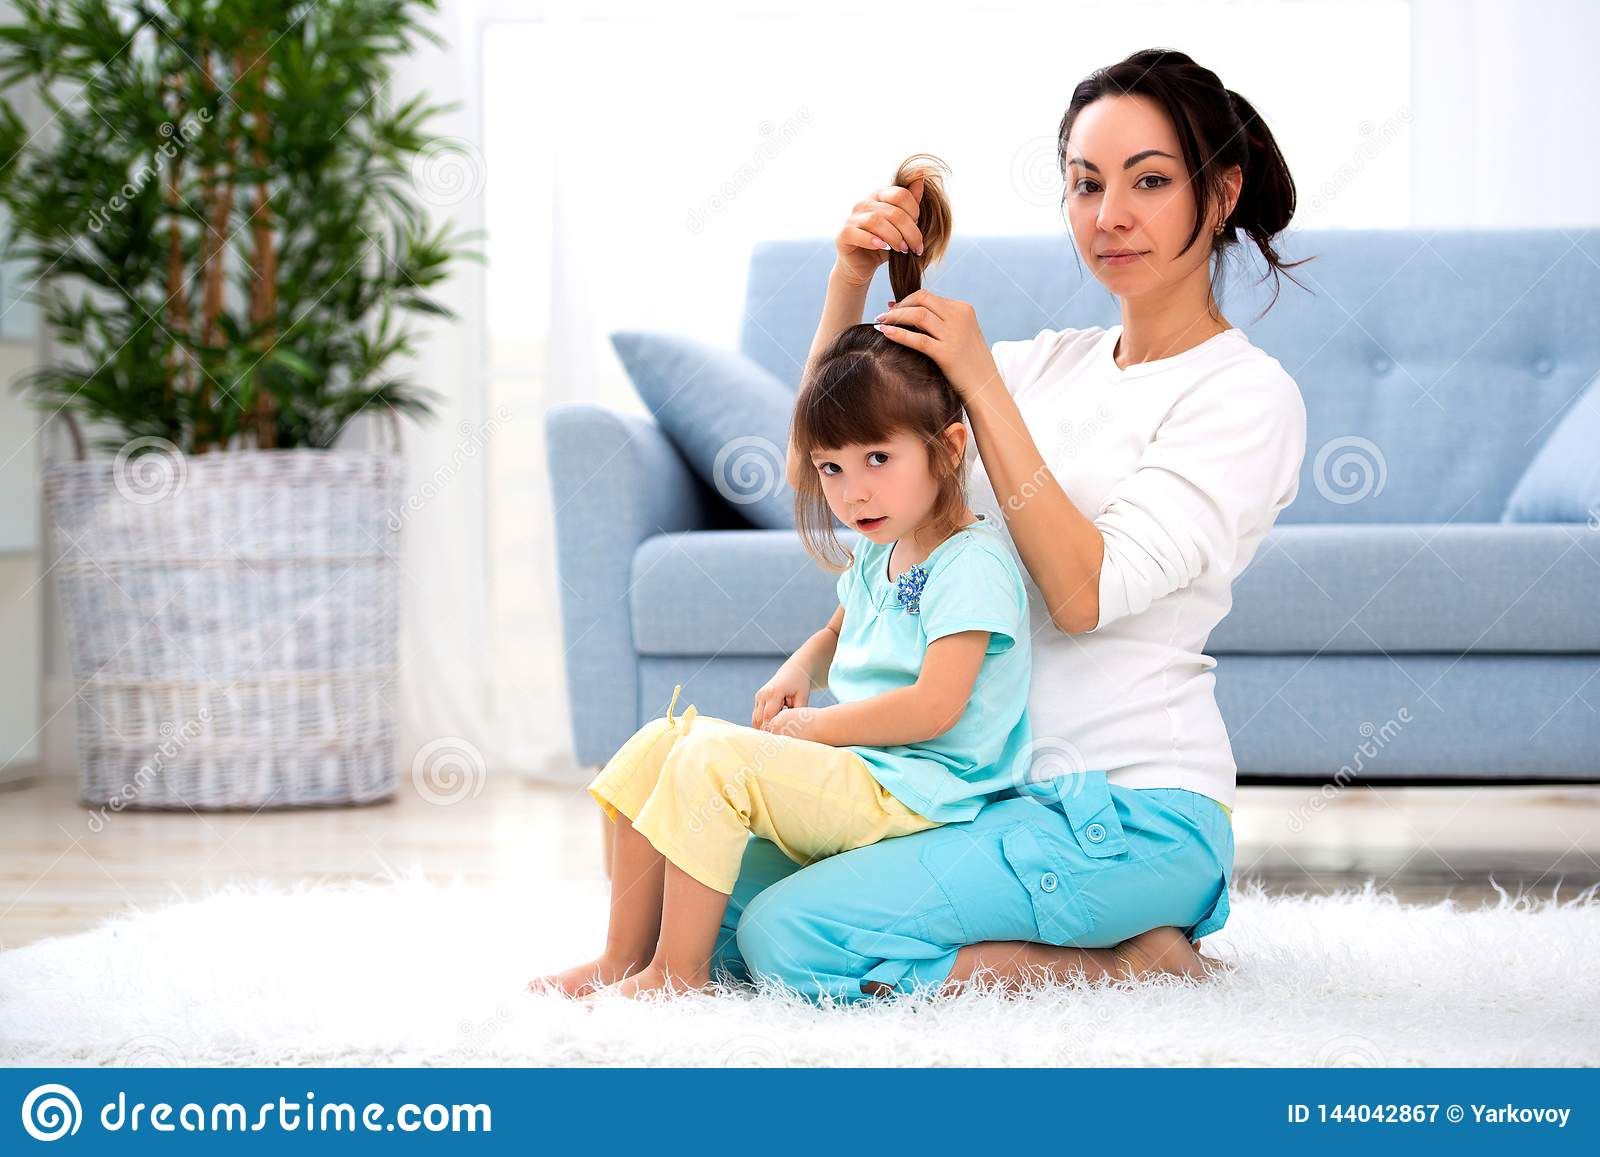 Happy loving family. Mother is combing her daughter`s hair sitting on the carpet on the floor in the room